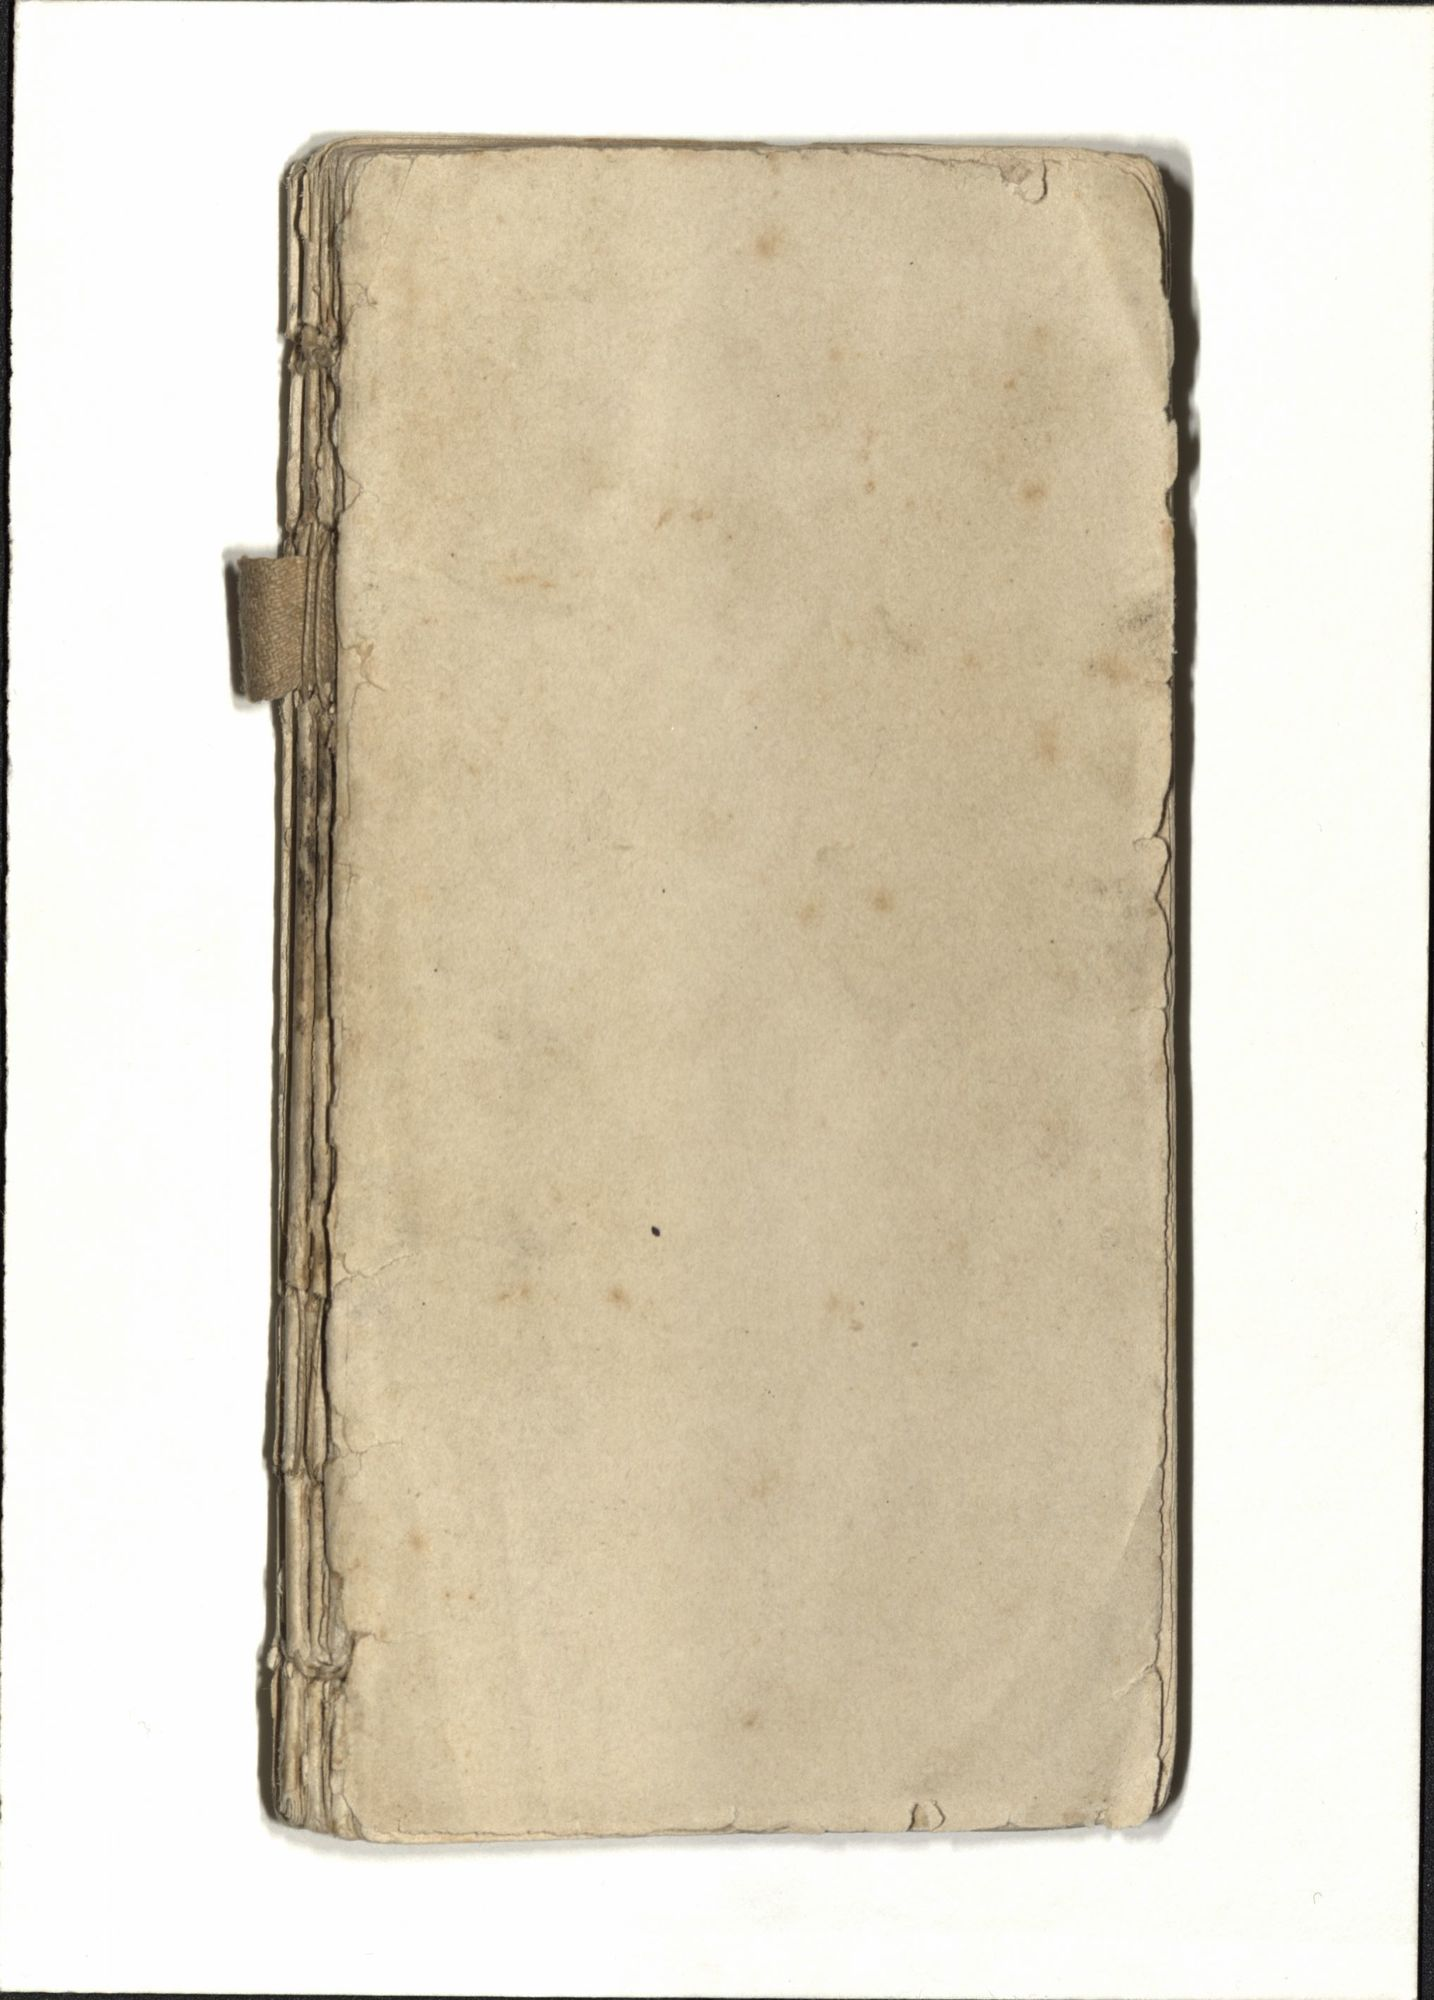 Ms2017_030_WhiteJournal_Front.jpg